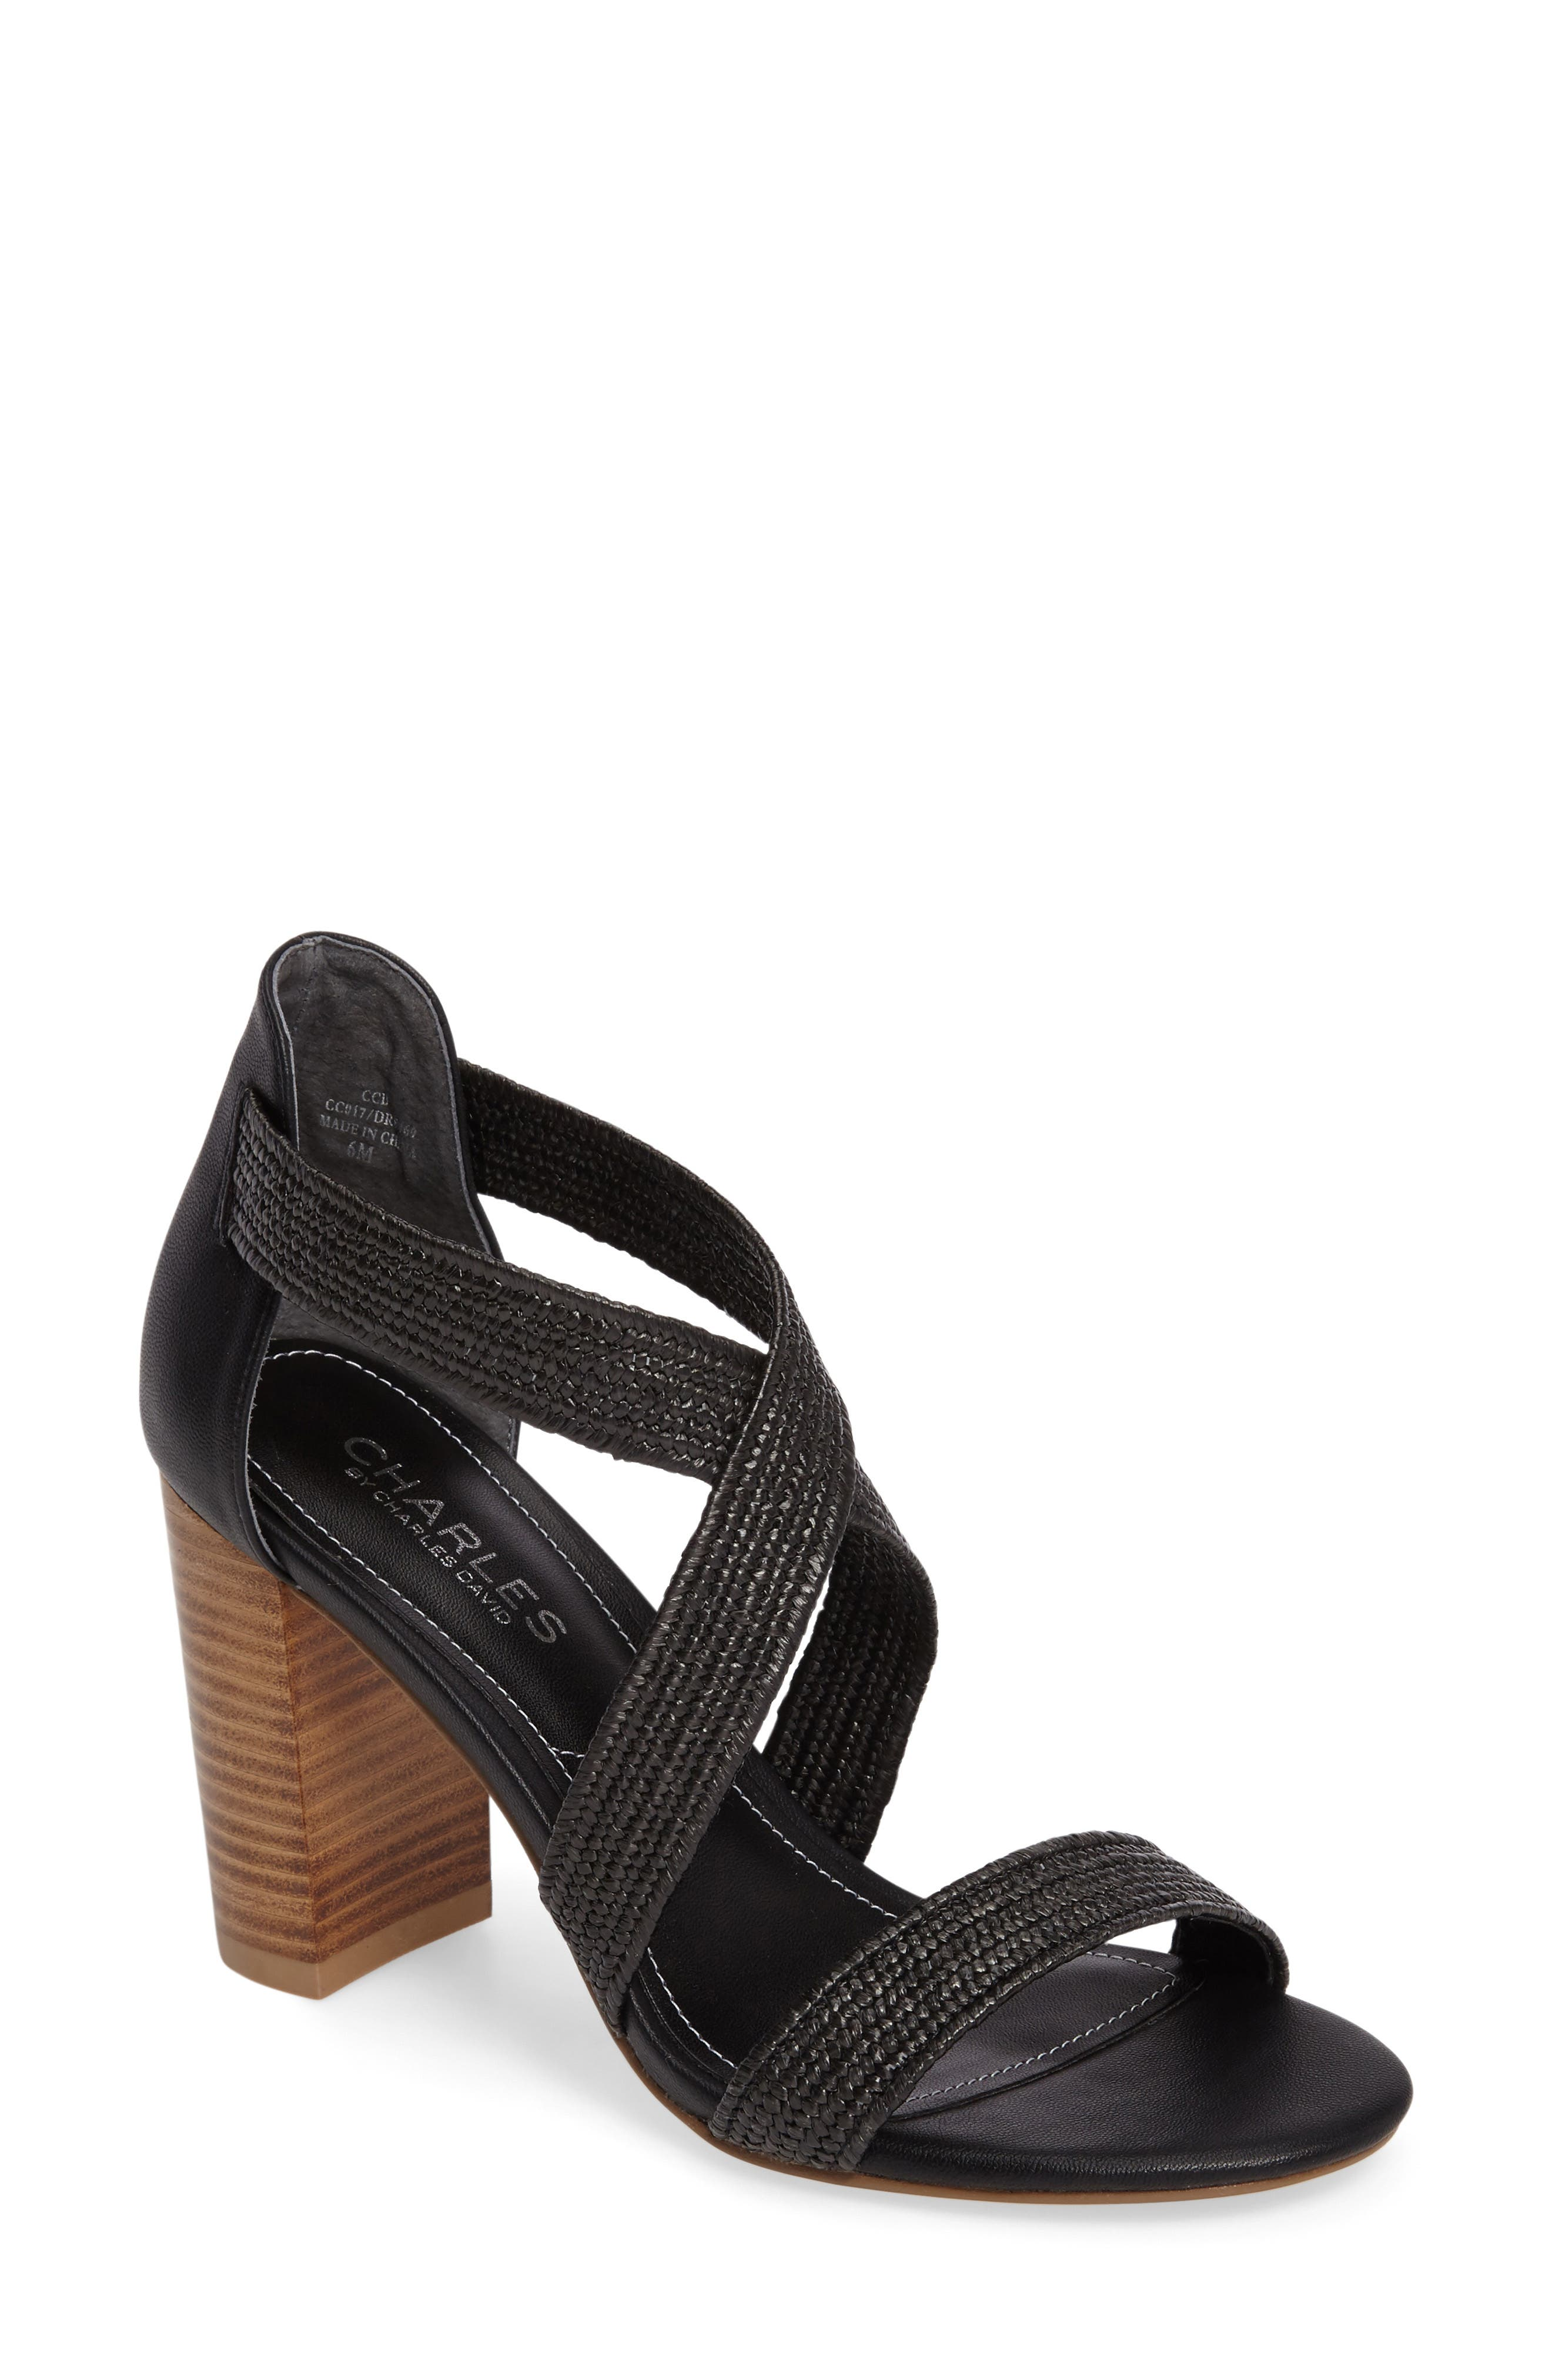 Main Image - Charles by Charles David Emily Strappy Sandal (Women)